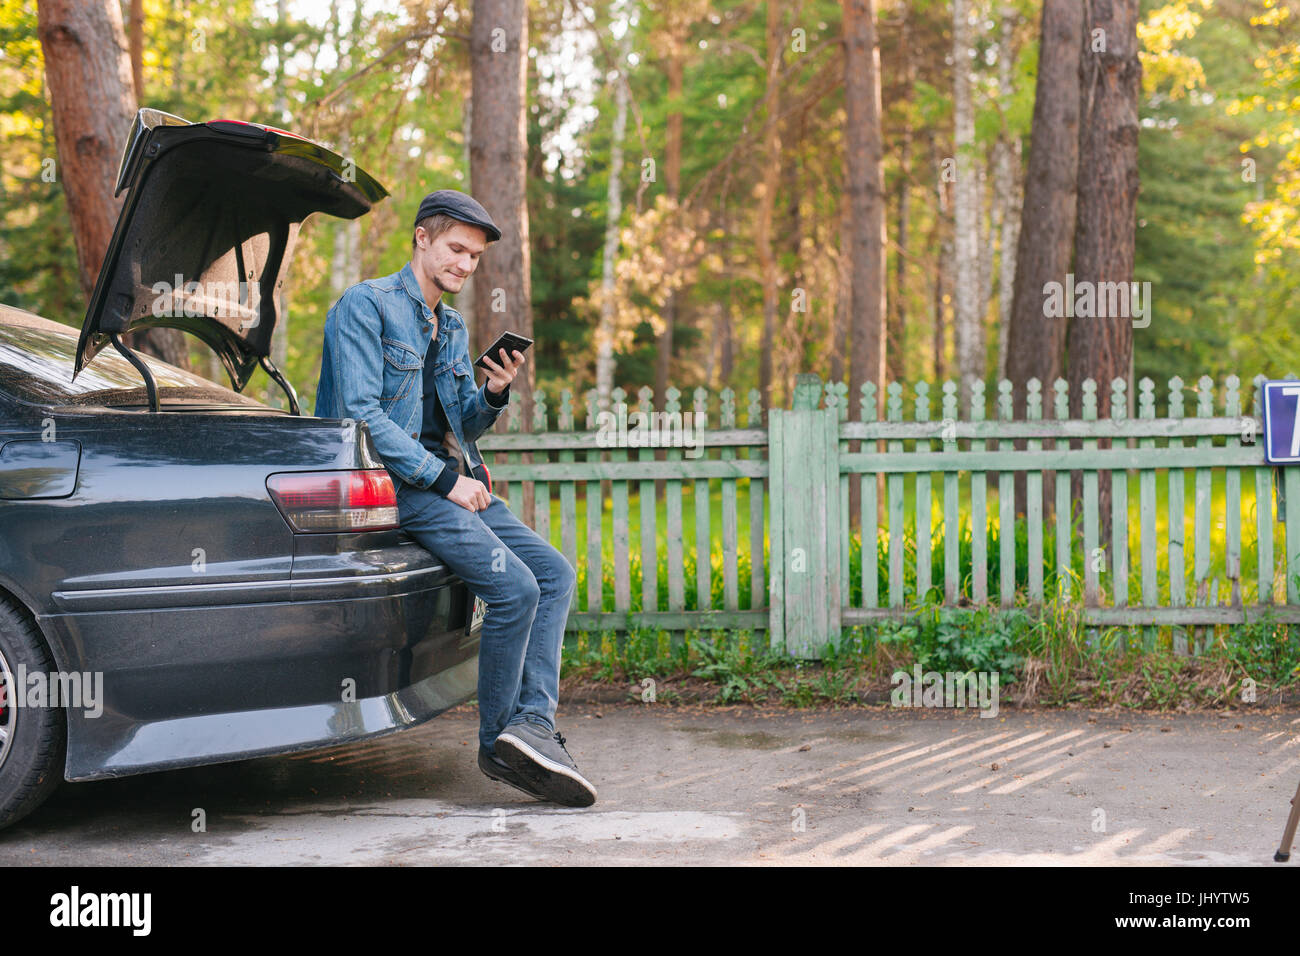 Young man sitting in the car trunk and using a smart phone on the roadside in the forest - Stock Image